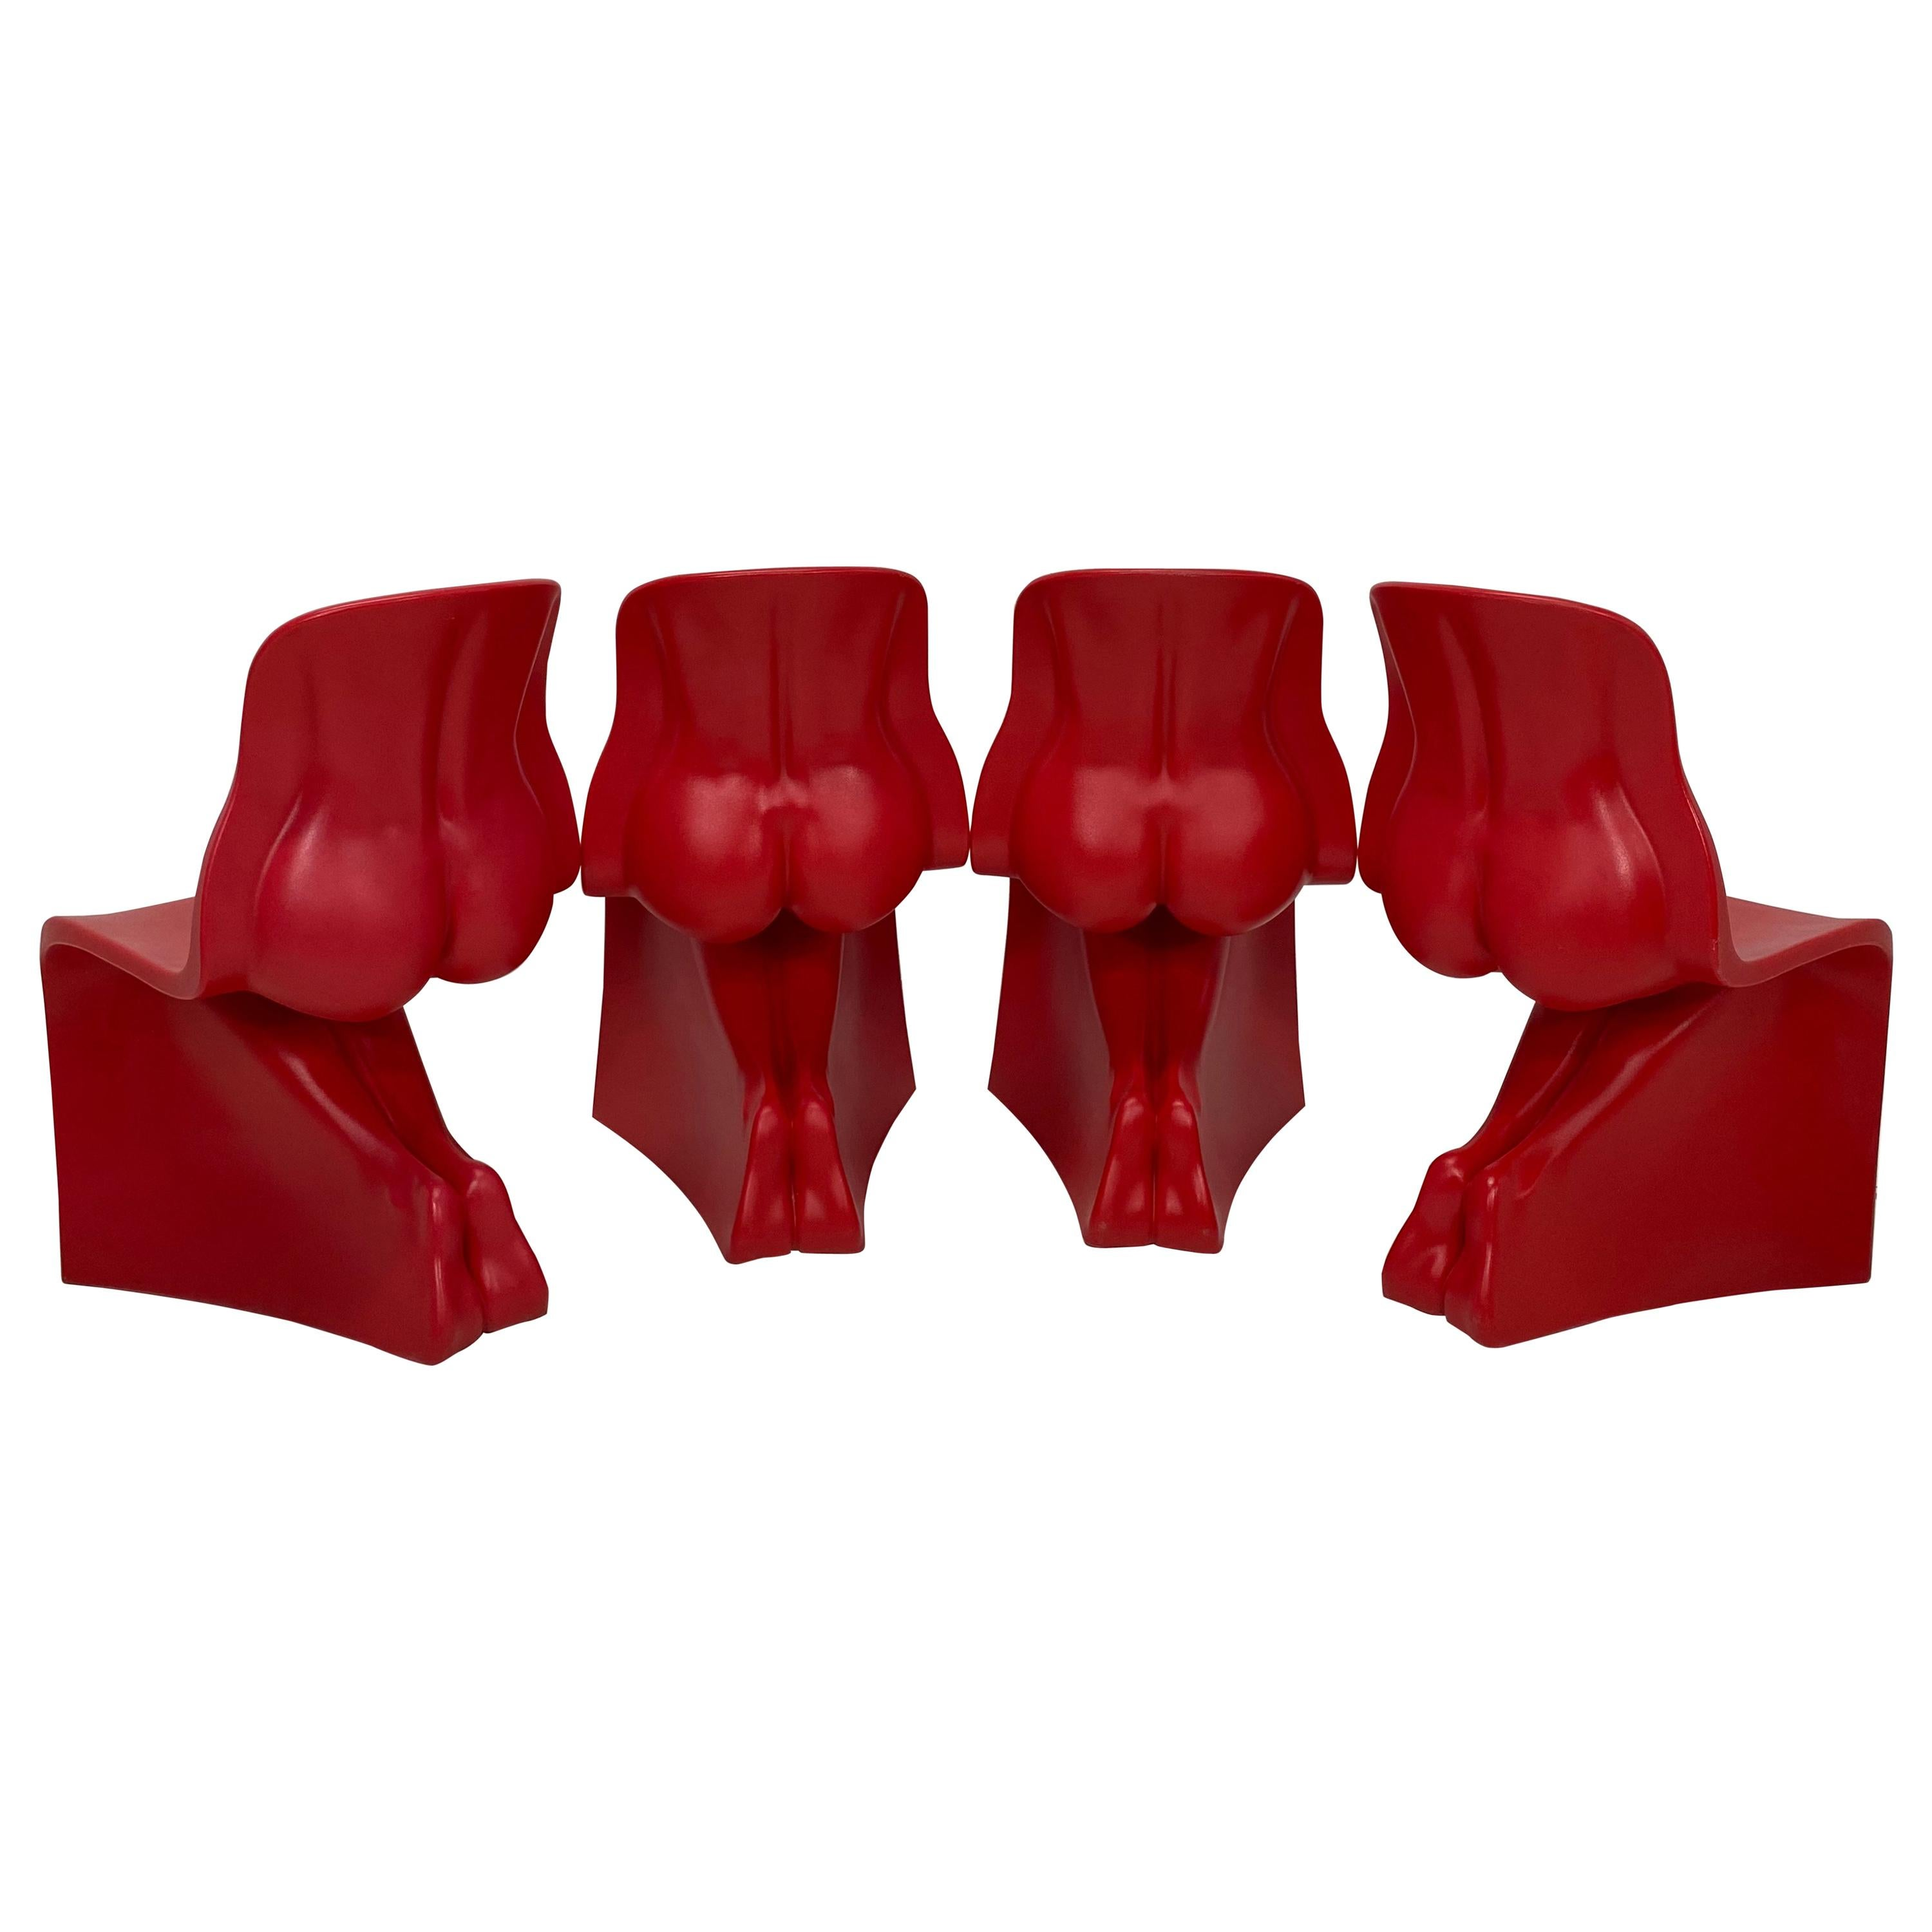 """Fabio Novembre Red """"Her"""" Chairs for Casamania, Set of Four"""